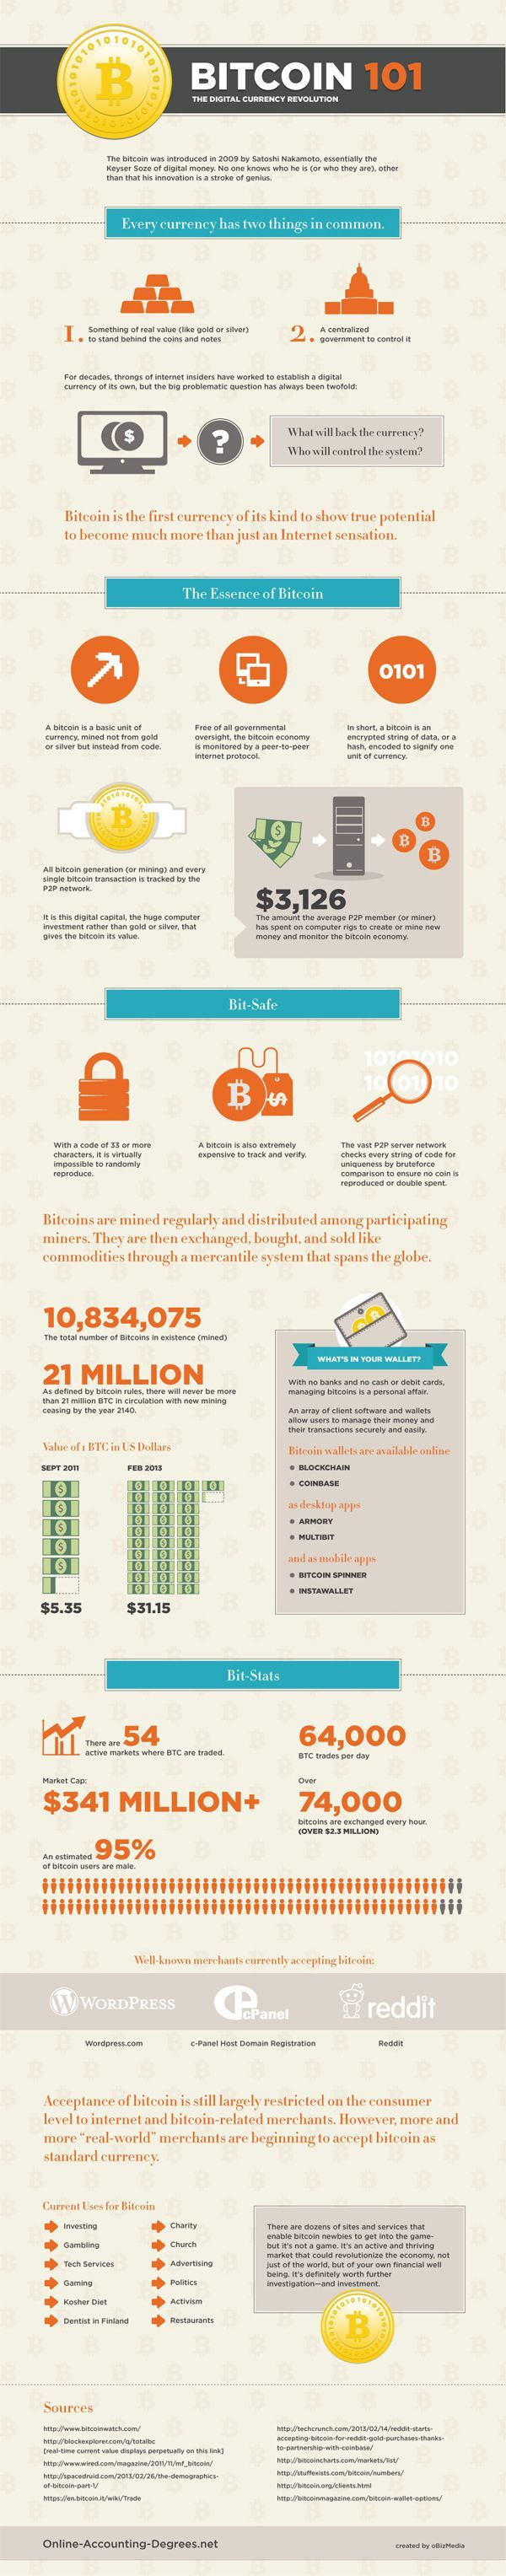 An infographic about how BitCoin works